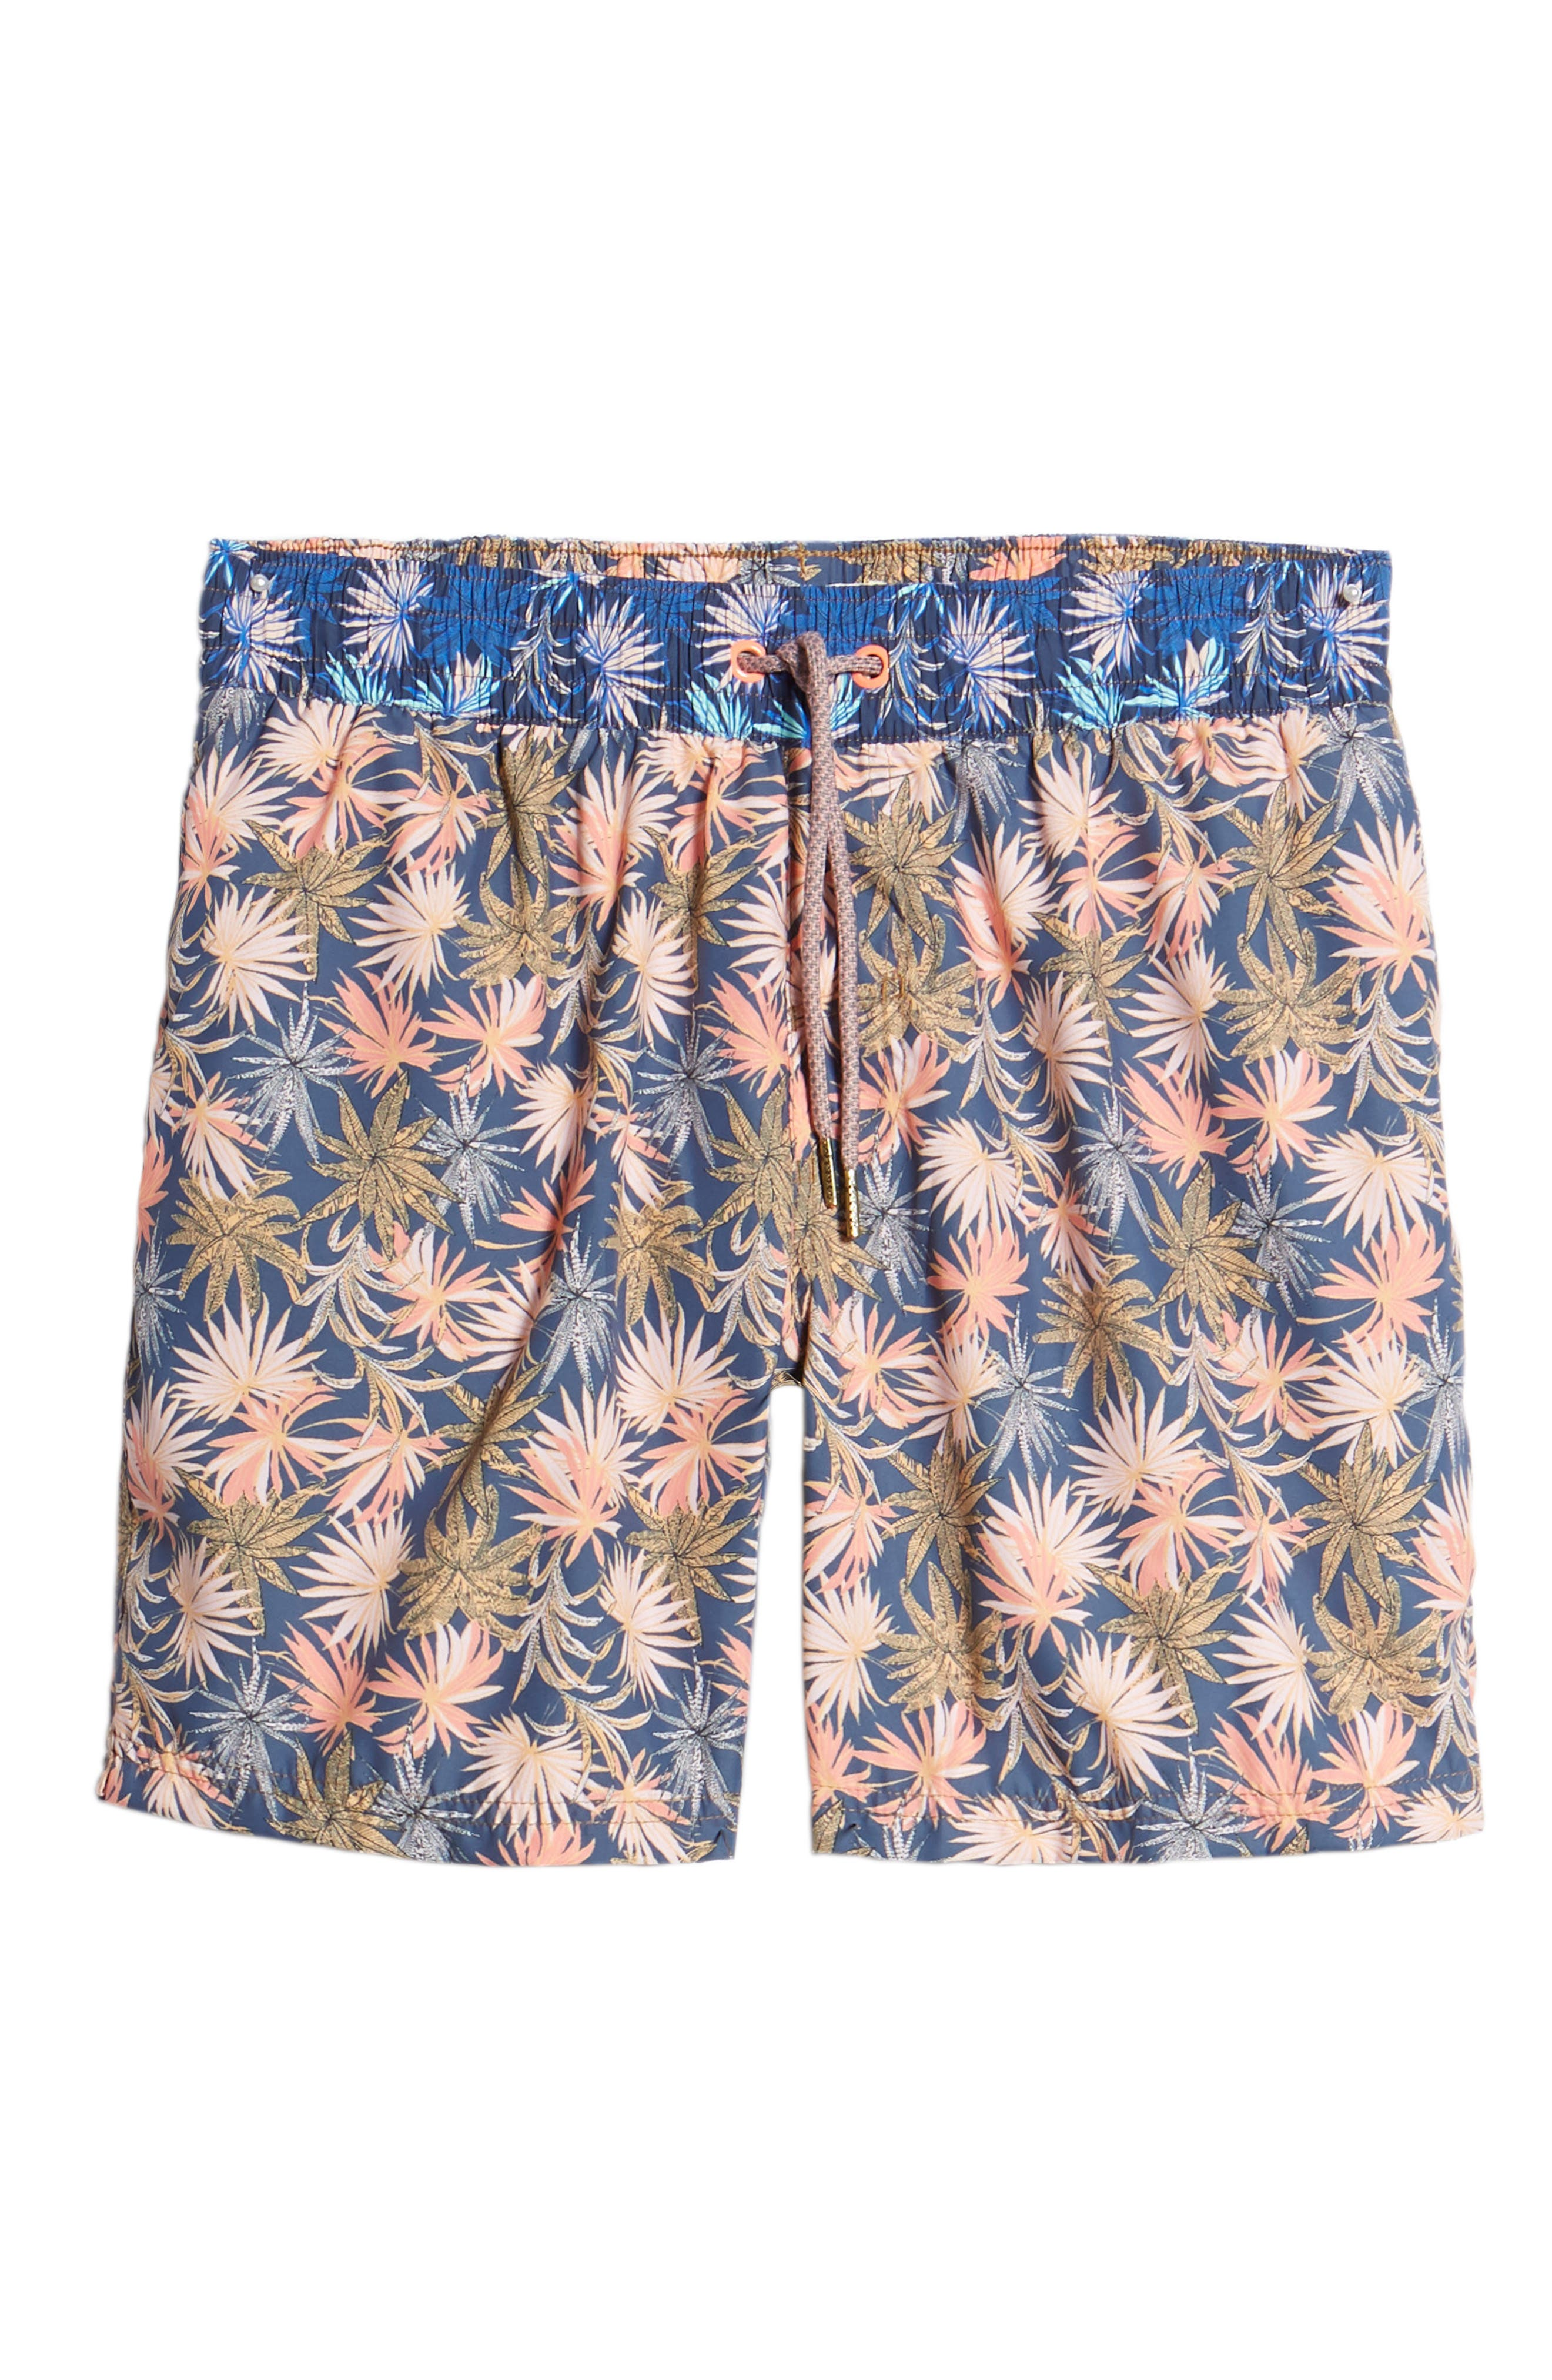 Kickflip Sport Fit Swim Trunks,                             Alternate thumbnail 6, color,                             400